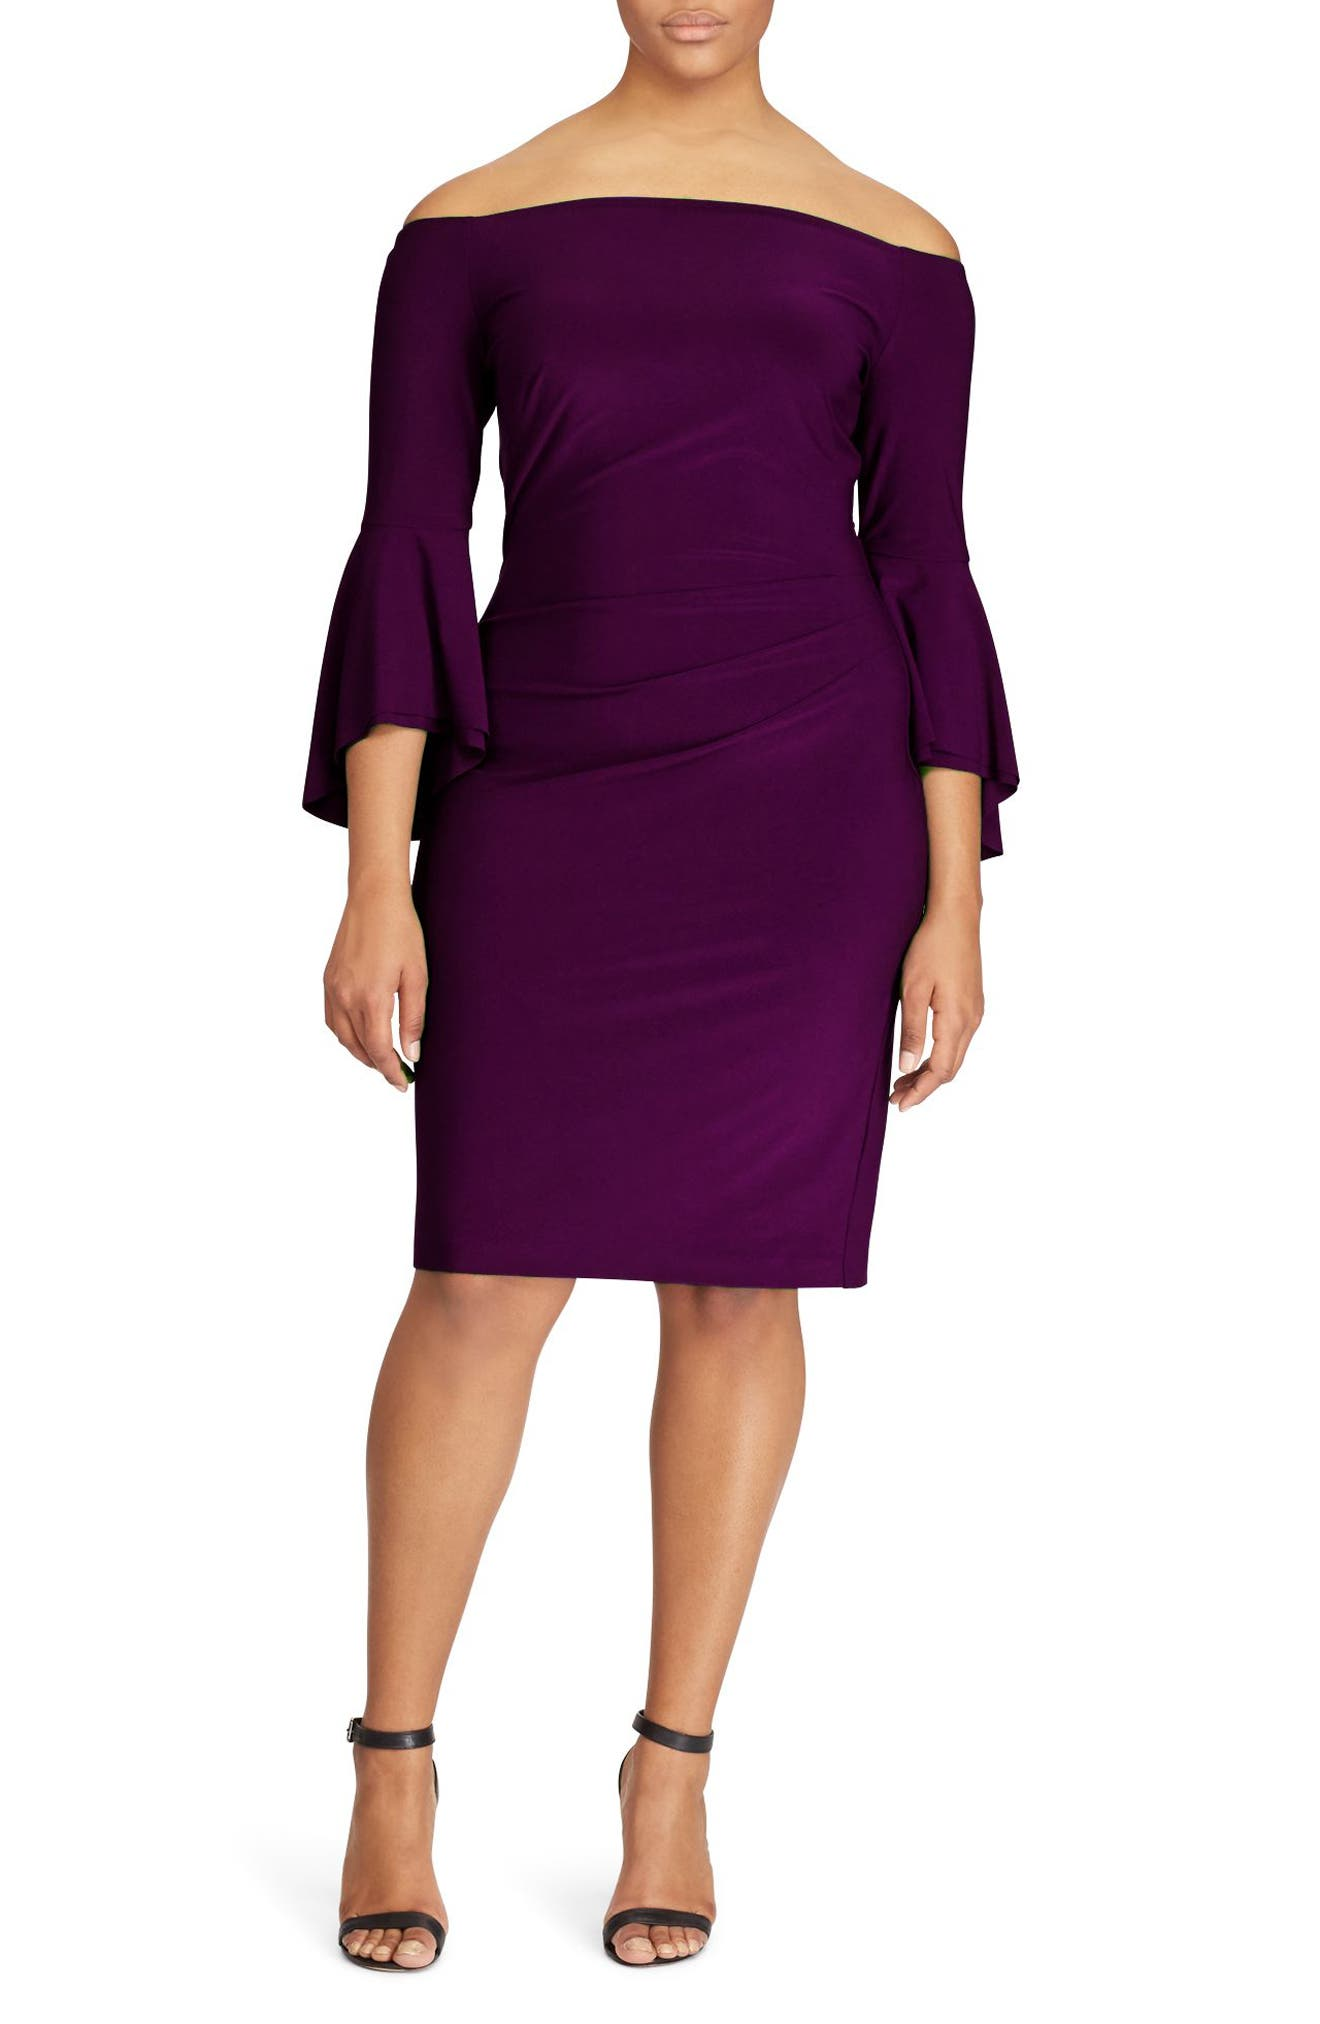 Bell Sleeve Sheath Dress,                             Main thumbnail 1, color,                             500